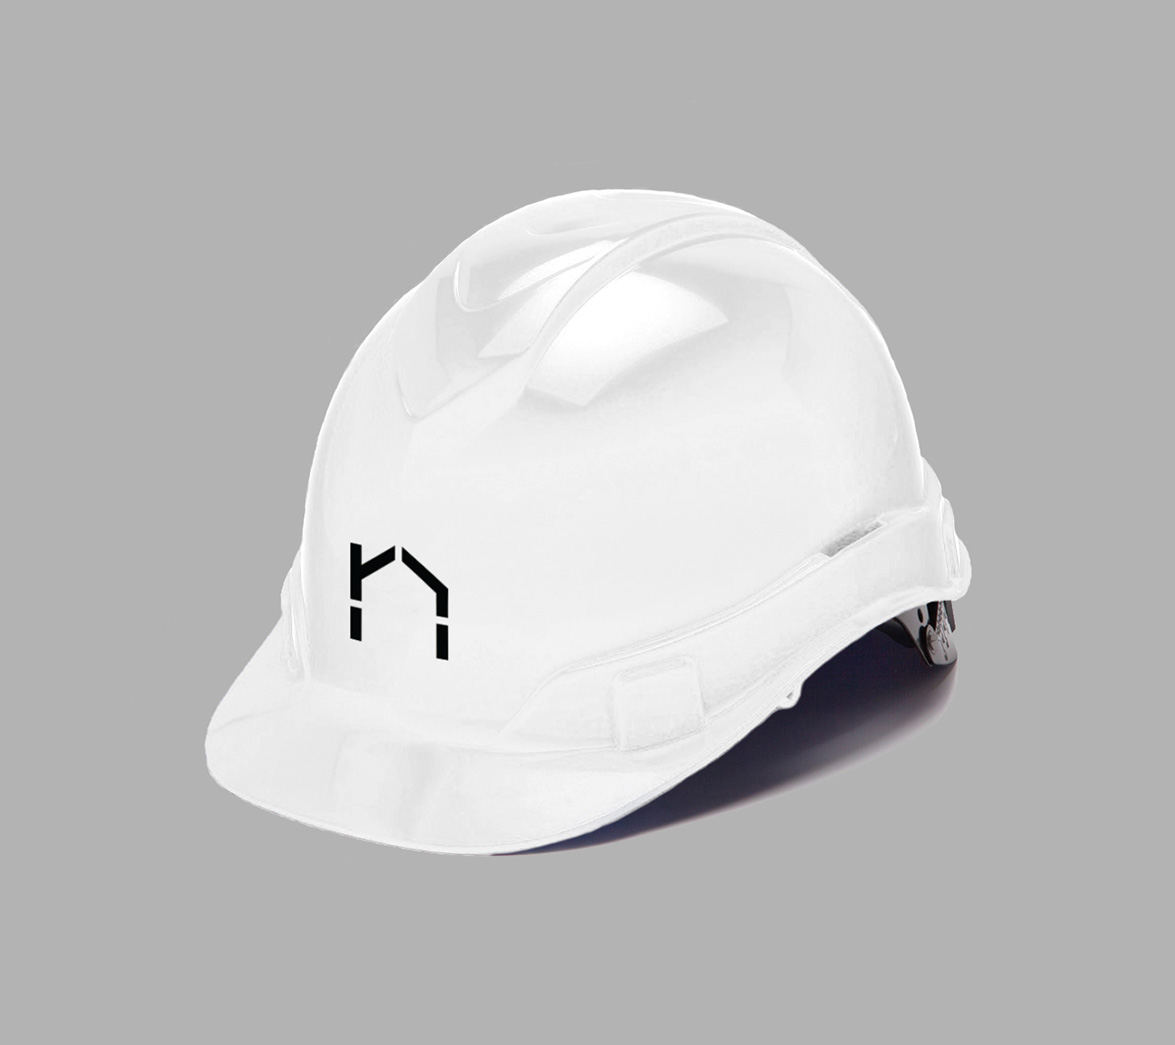 Helmet design for architecture startup brand nHouse, designed by White Bear Studio